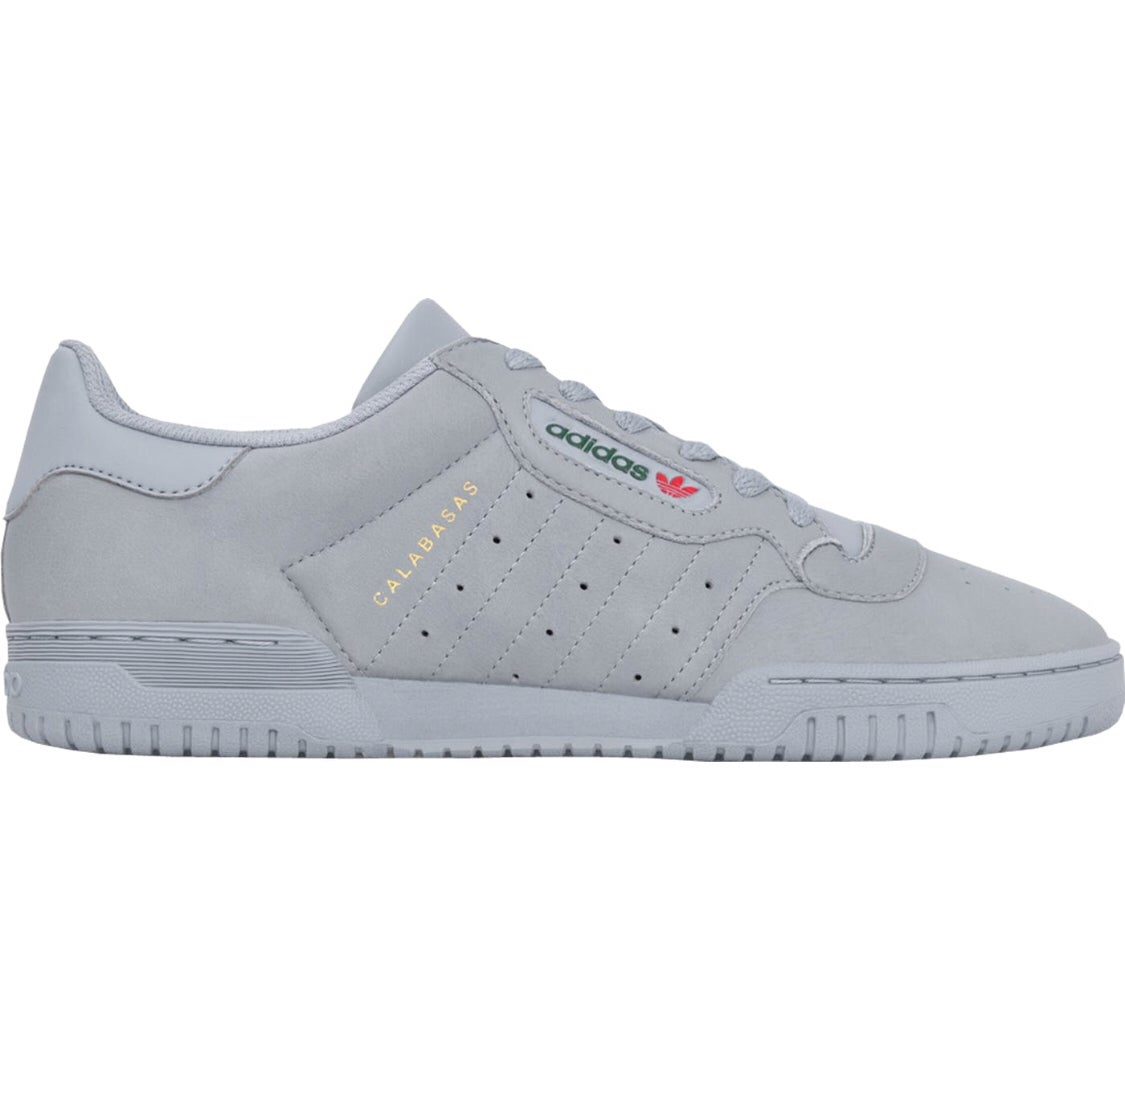 Image of Adidas power phase calabas grey